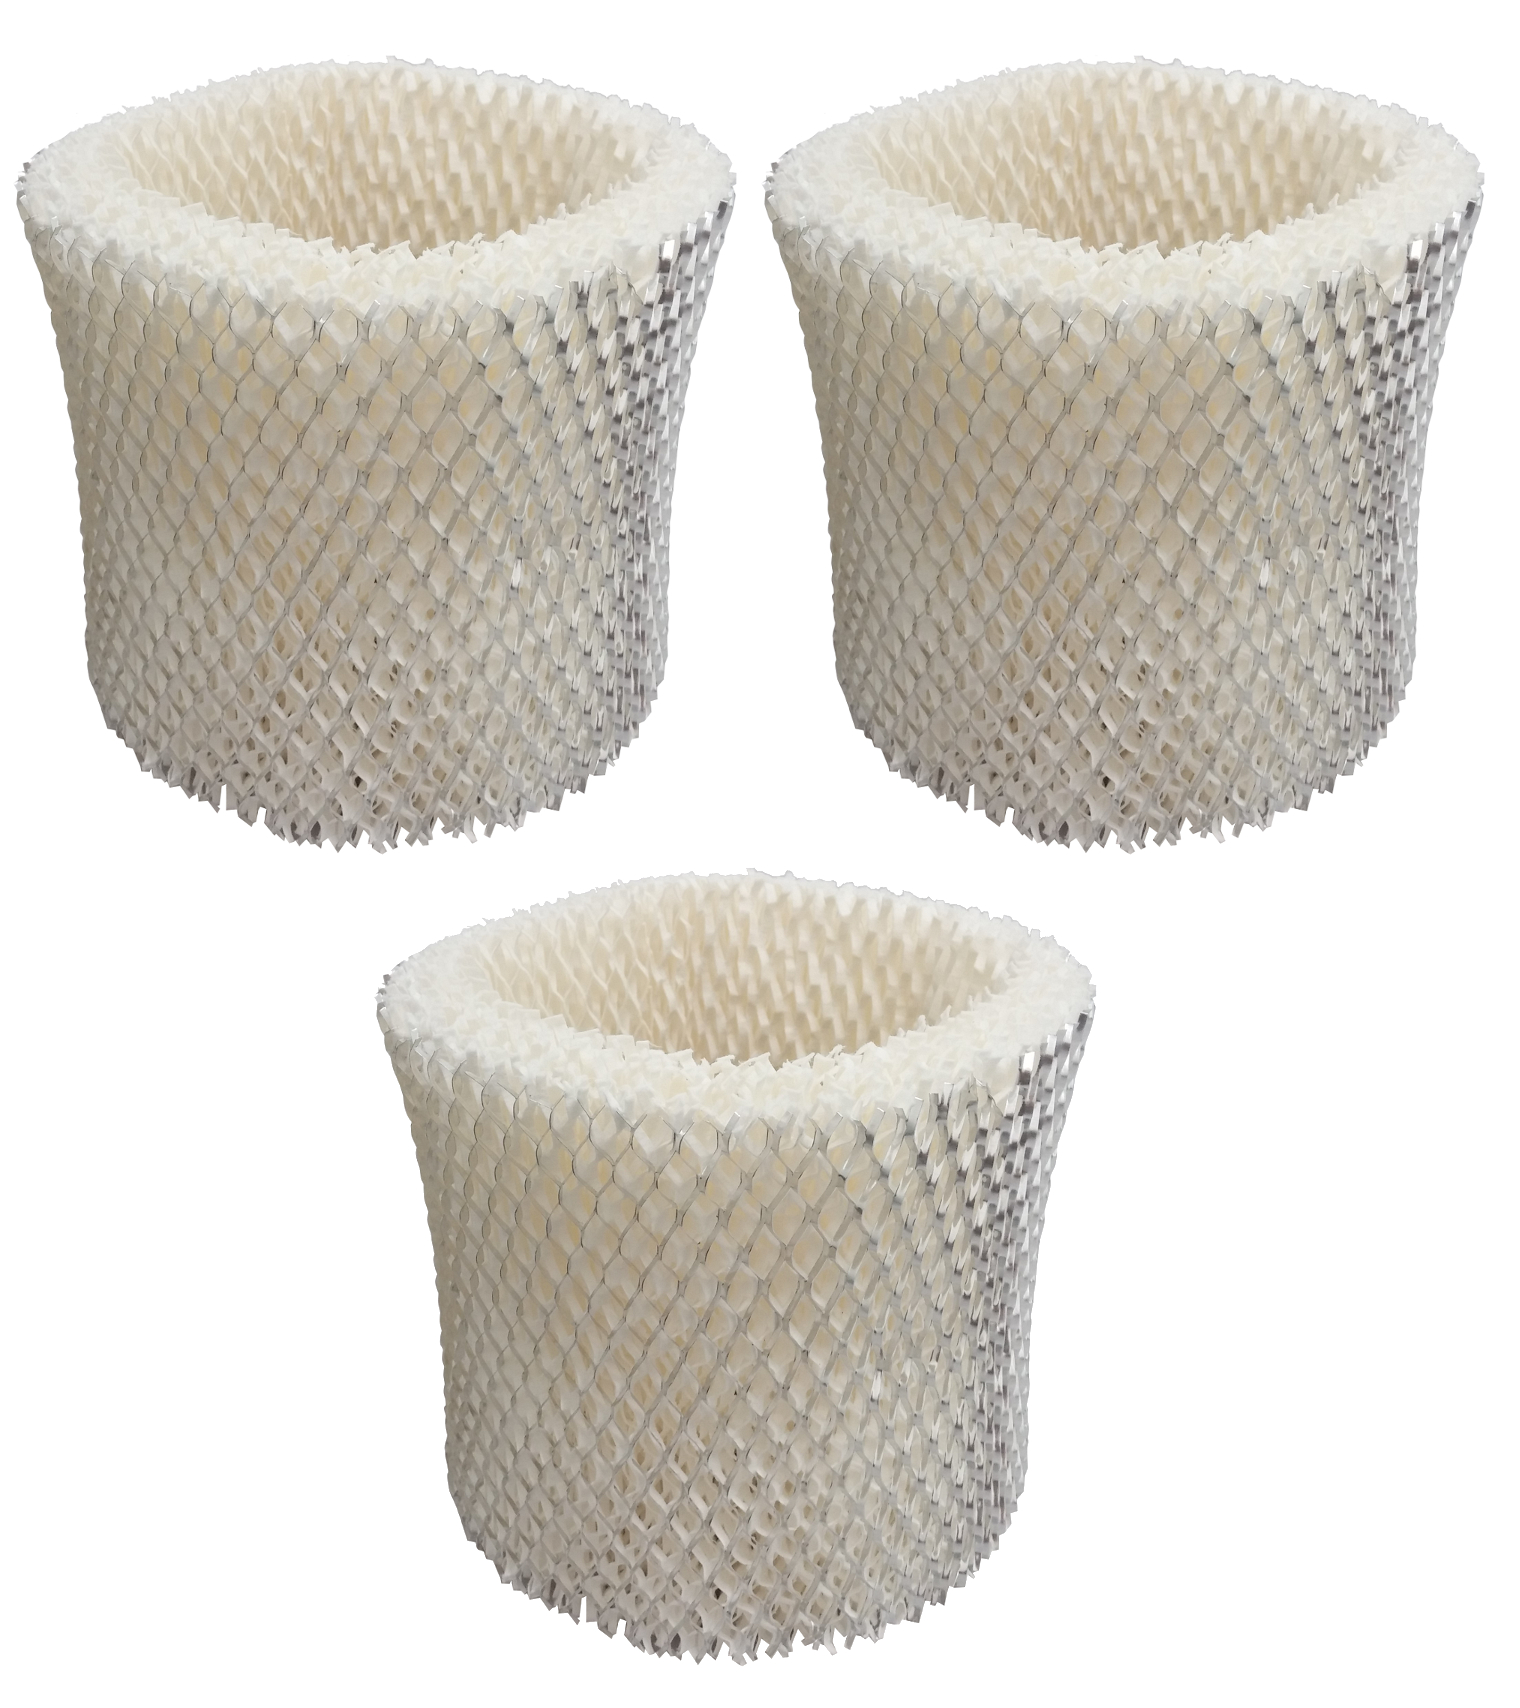 Humidifier Filters > Sunbeam > 3 Sunbeam SCM1746 Humidifier Filters #776A54